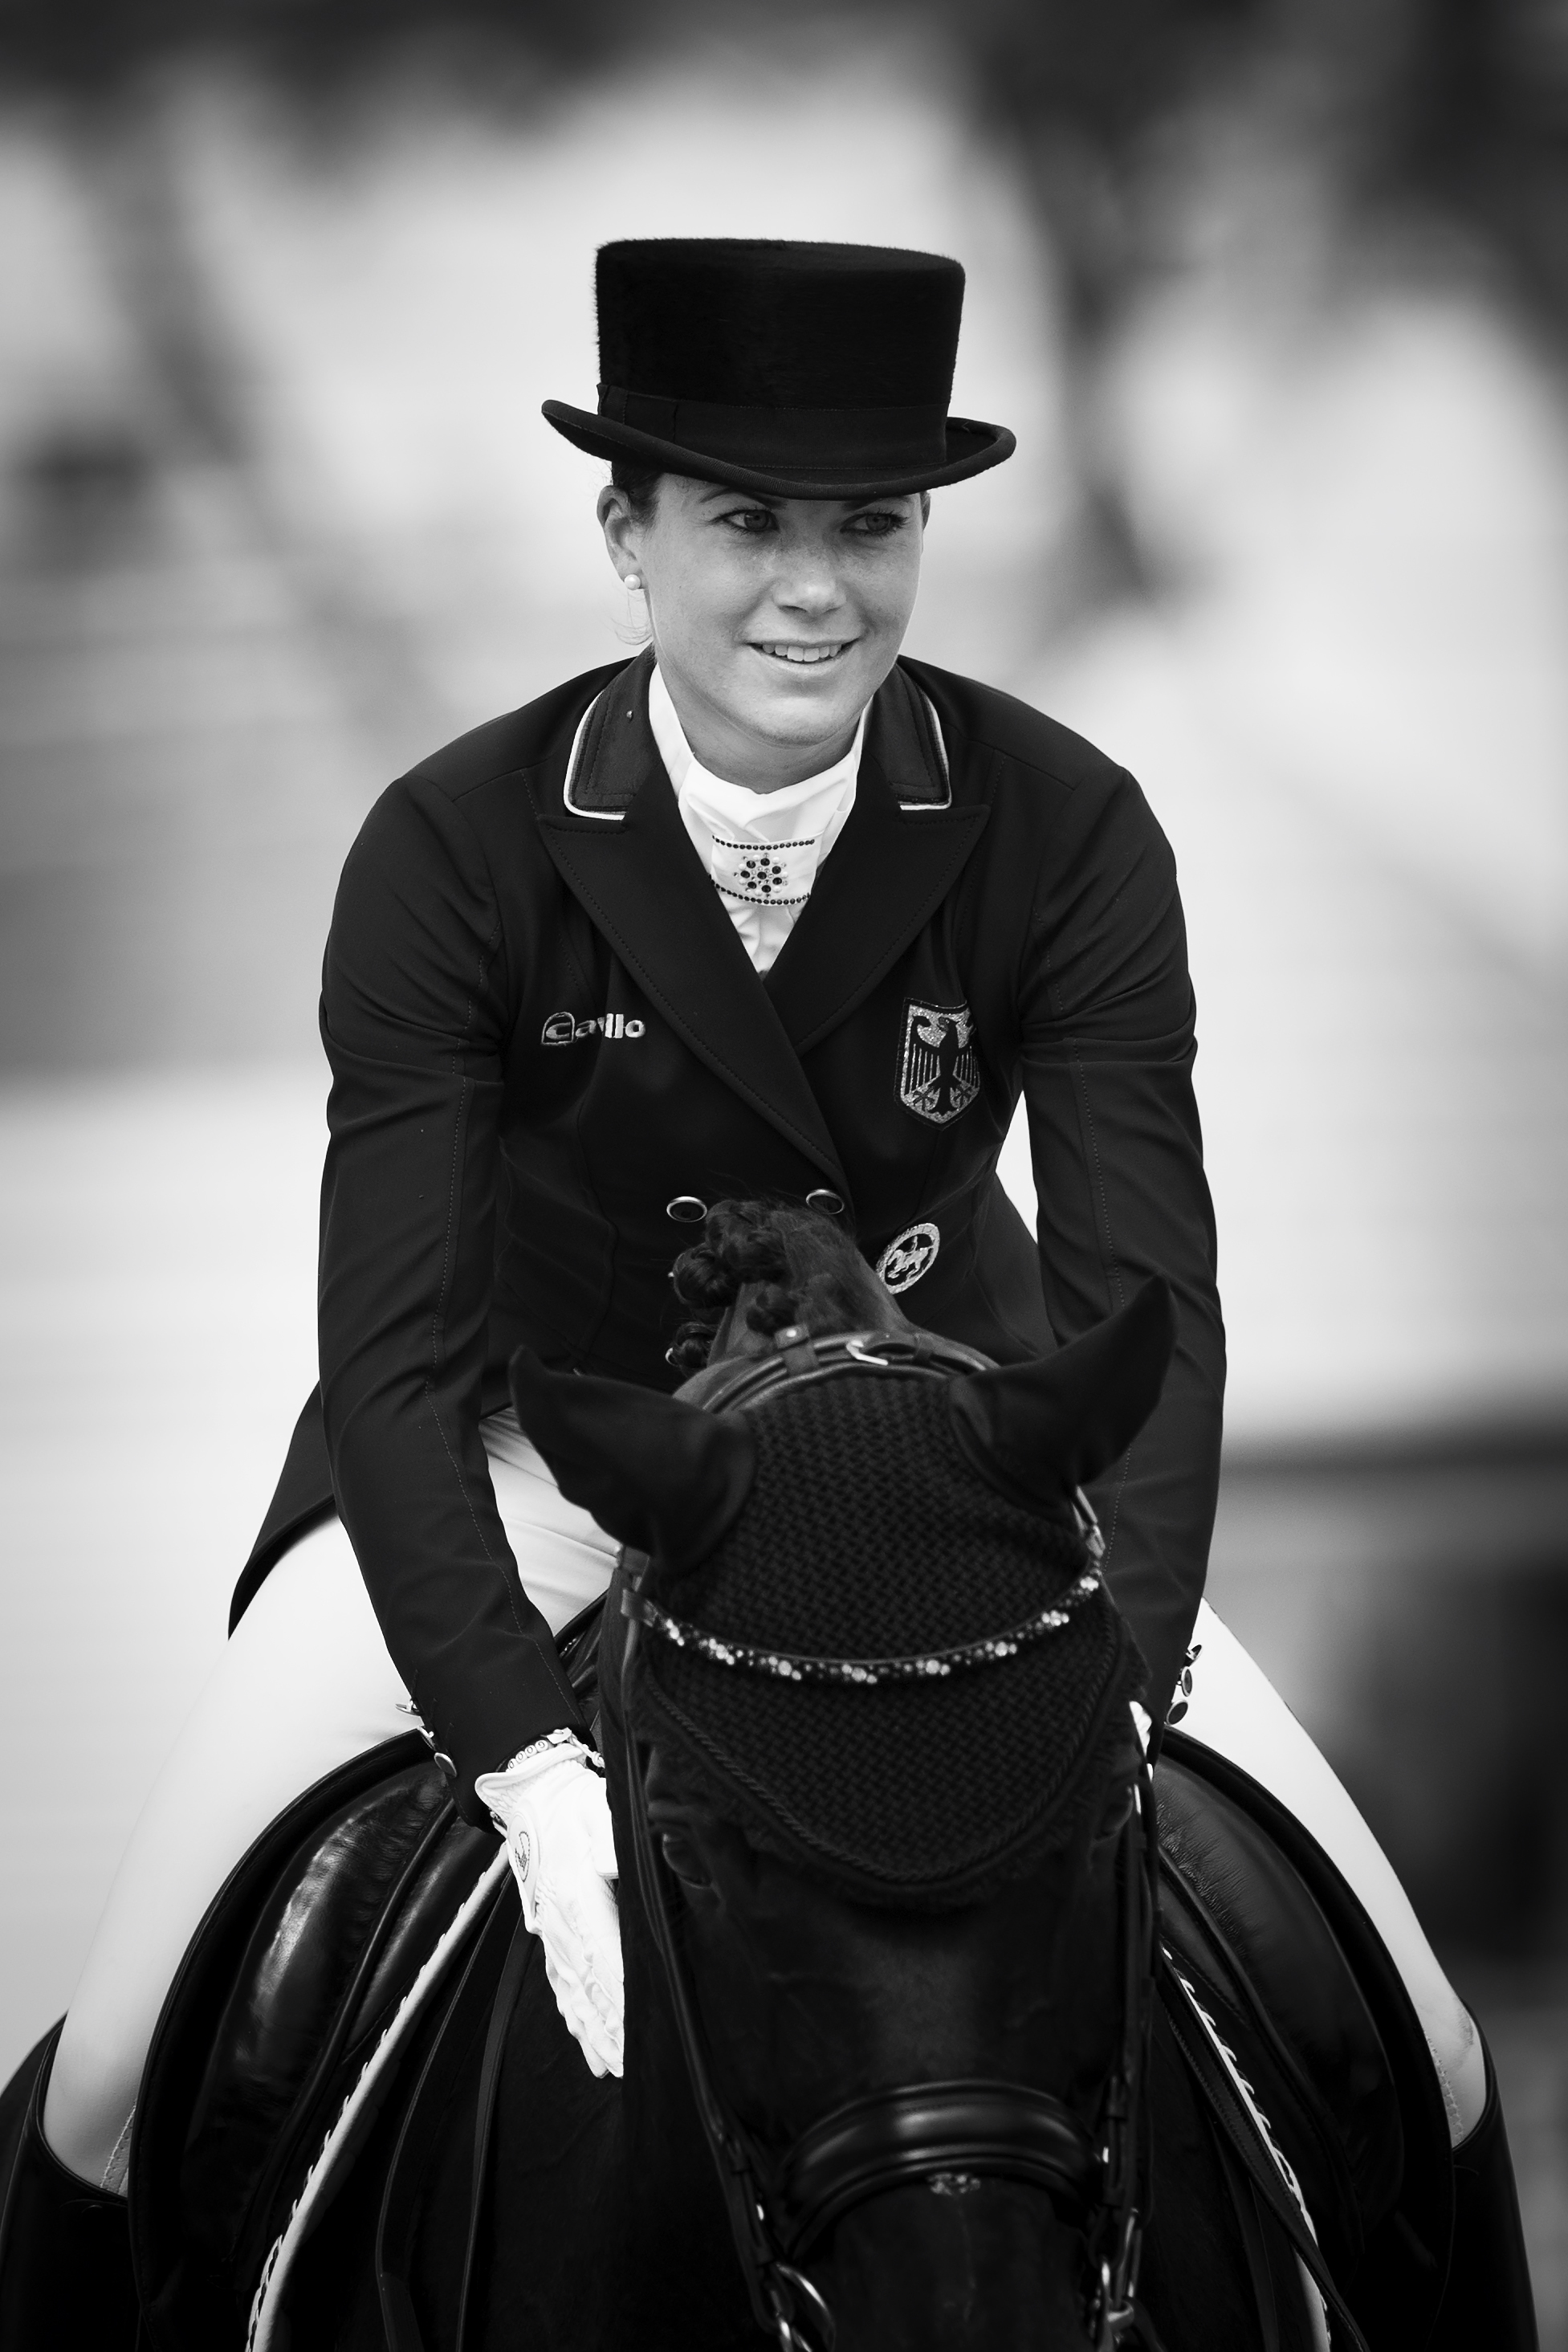 Horse Inspection COUNTRY DAY 5 OLYMPIC GAMES RIO Dressage Individual . Grand Prix. GER BRORING-SPREHE Kristina Pic Richard Juilliart